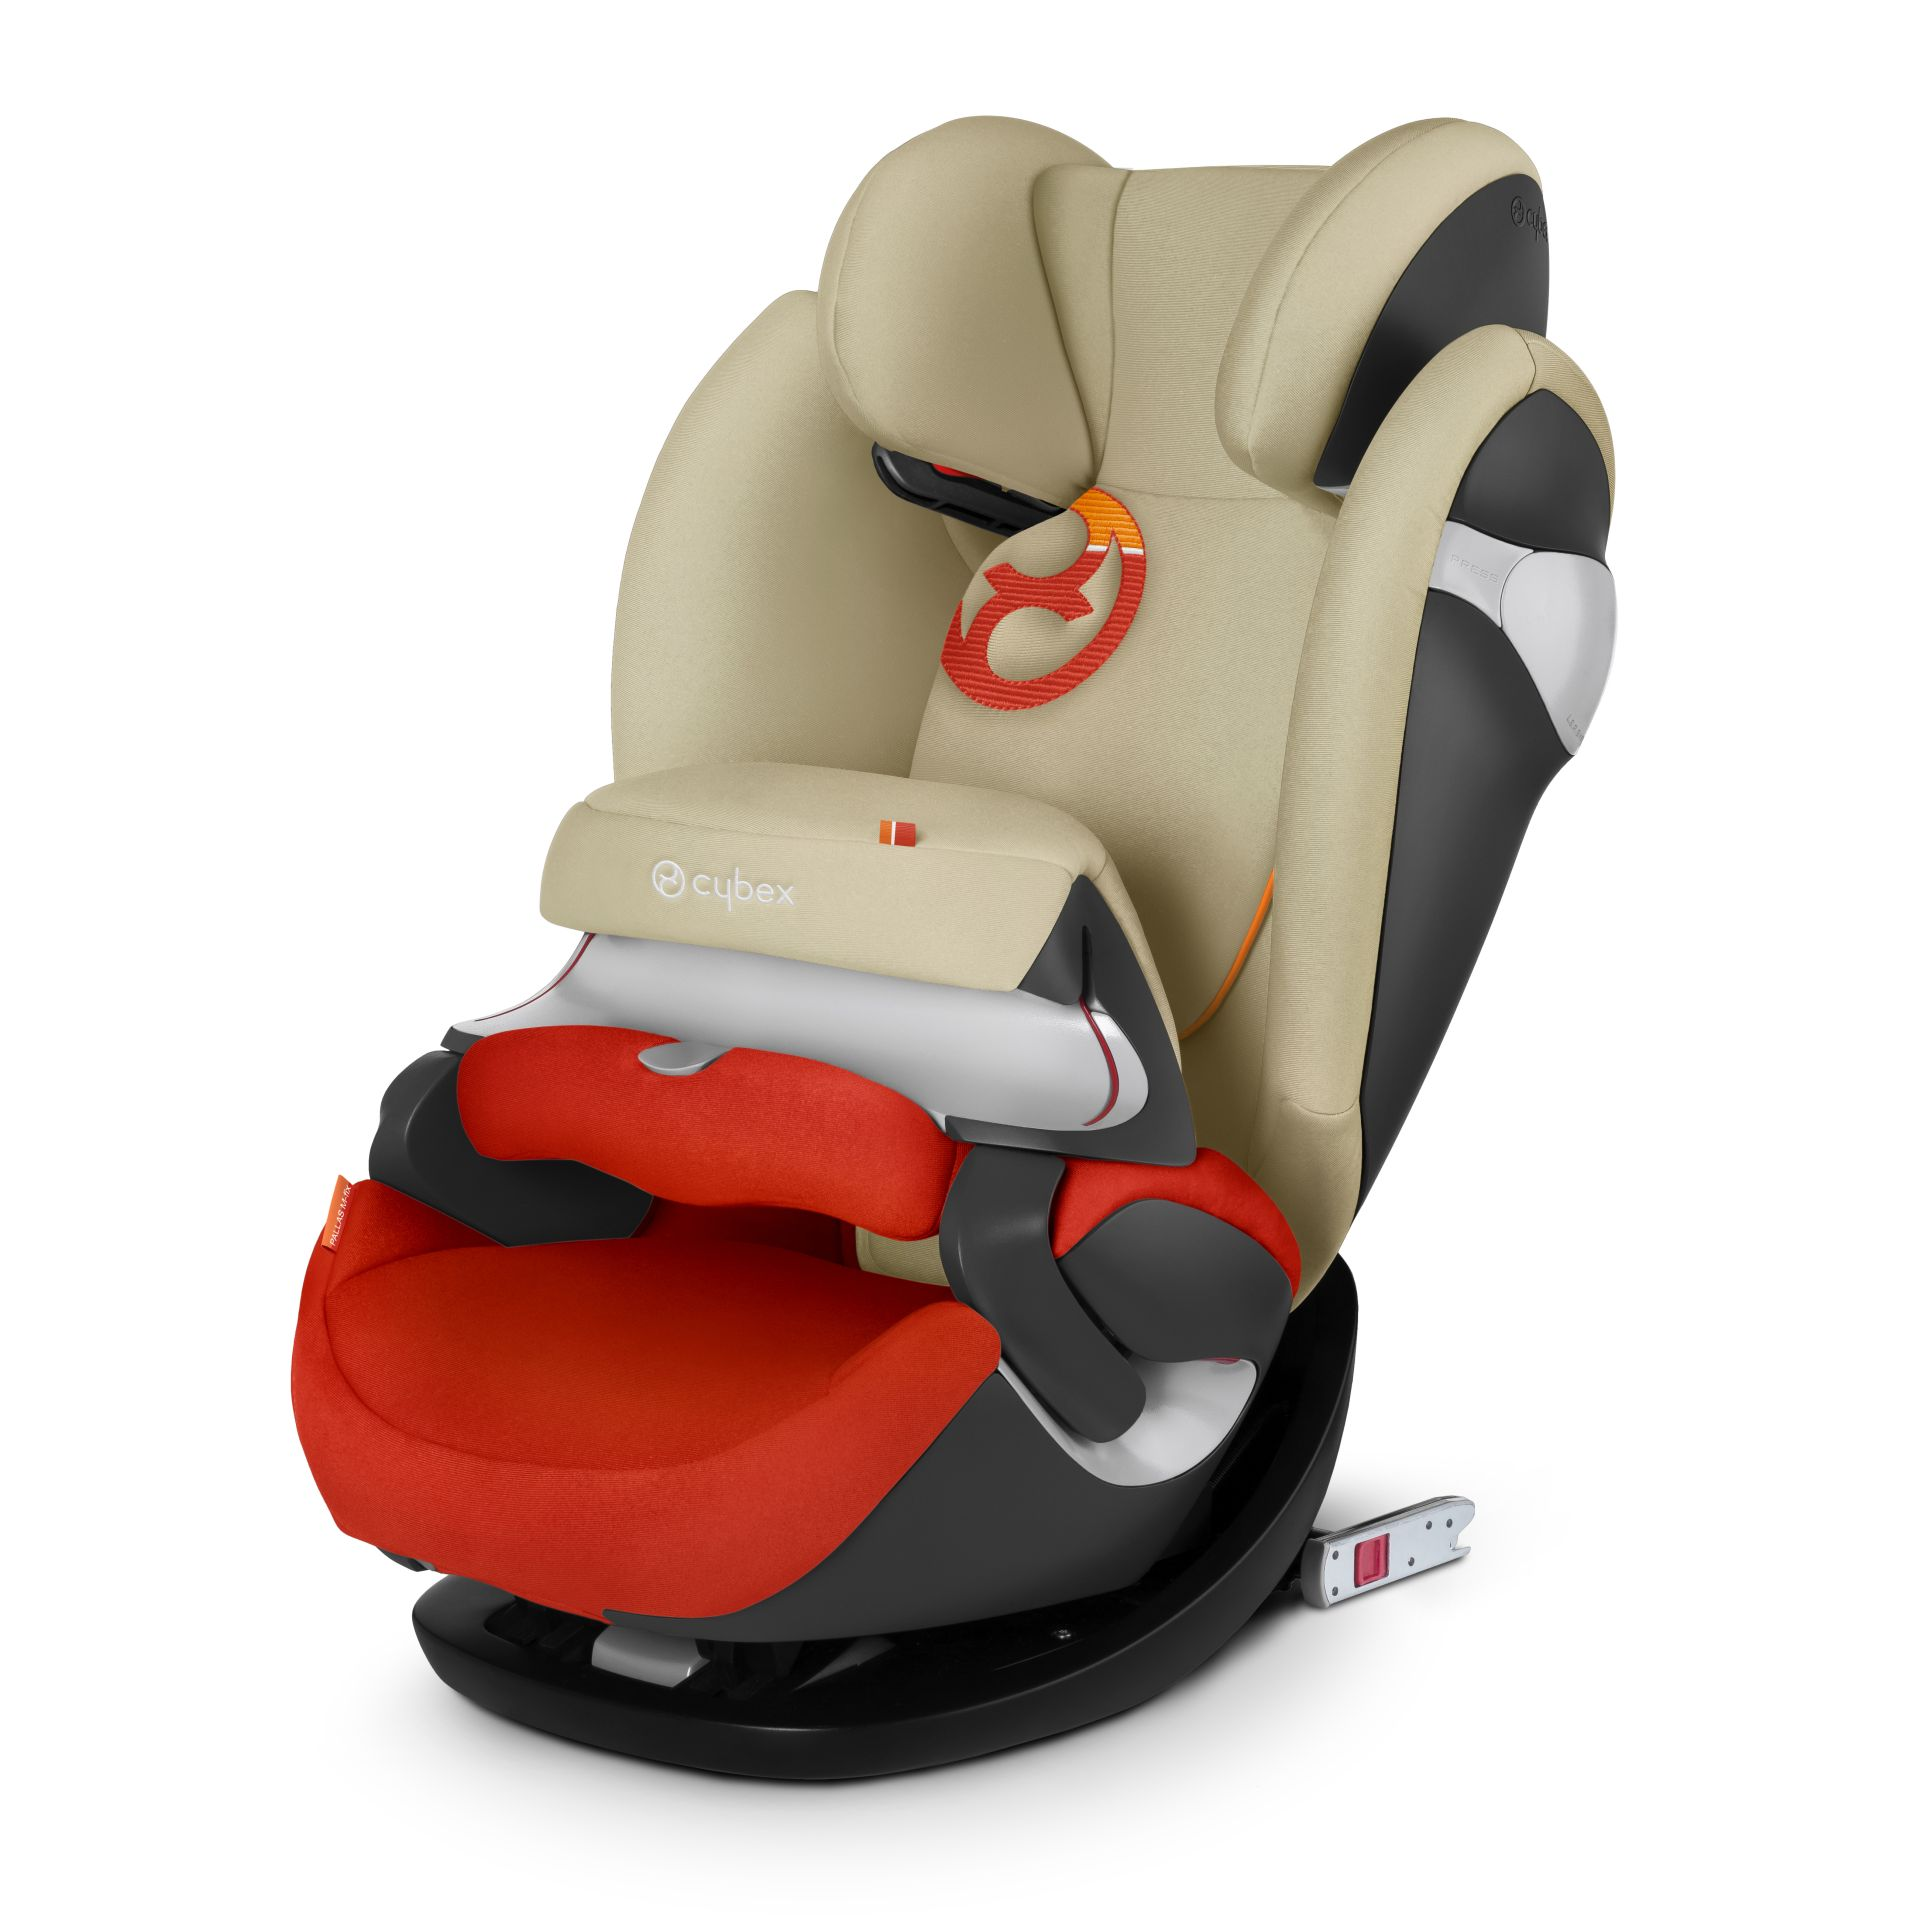 Autositz Cybex Pallas M Fix Cybex Kindersitz Pallas M Fix 2017 Autumn Gold Burnt Red